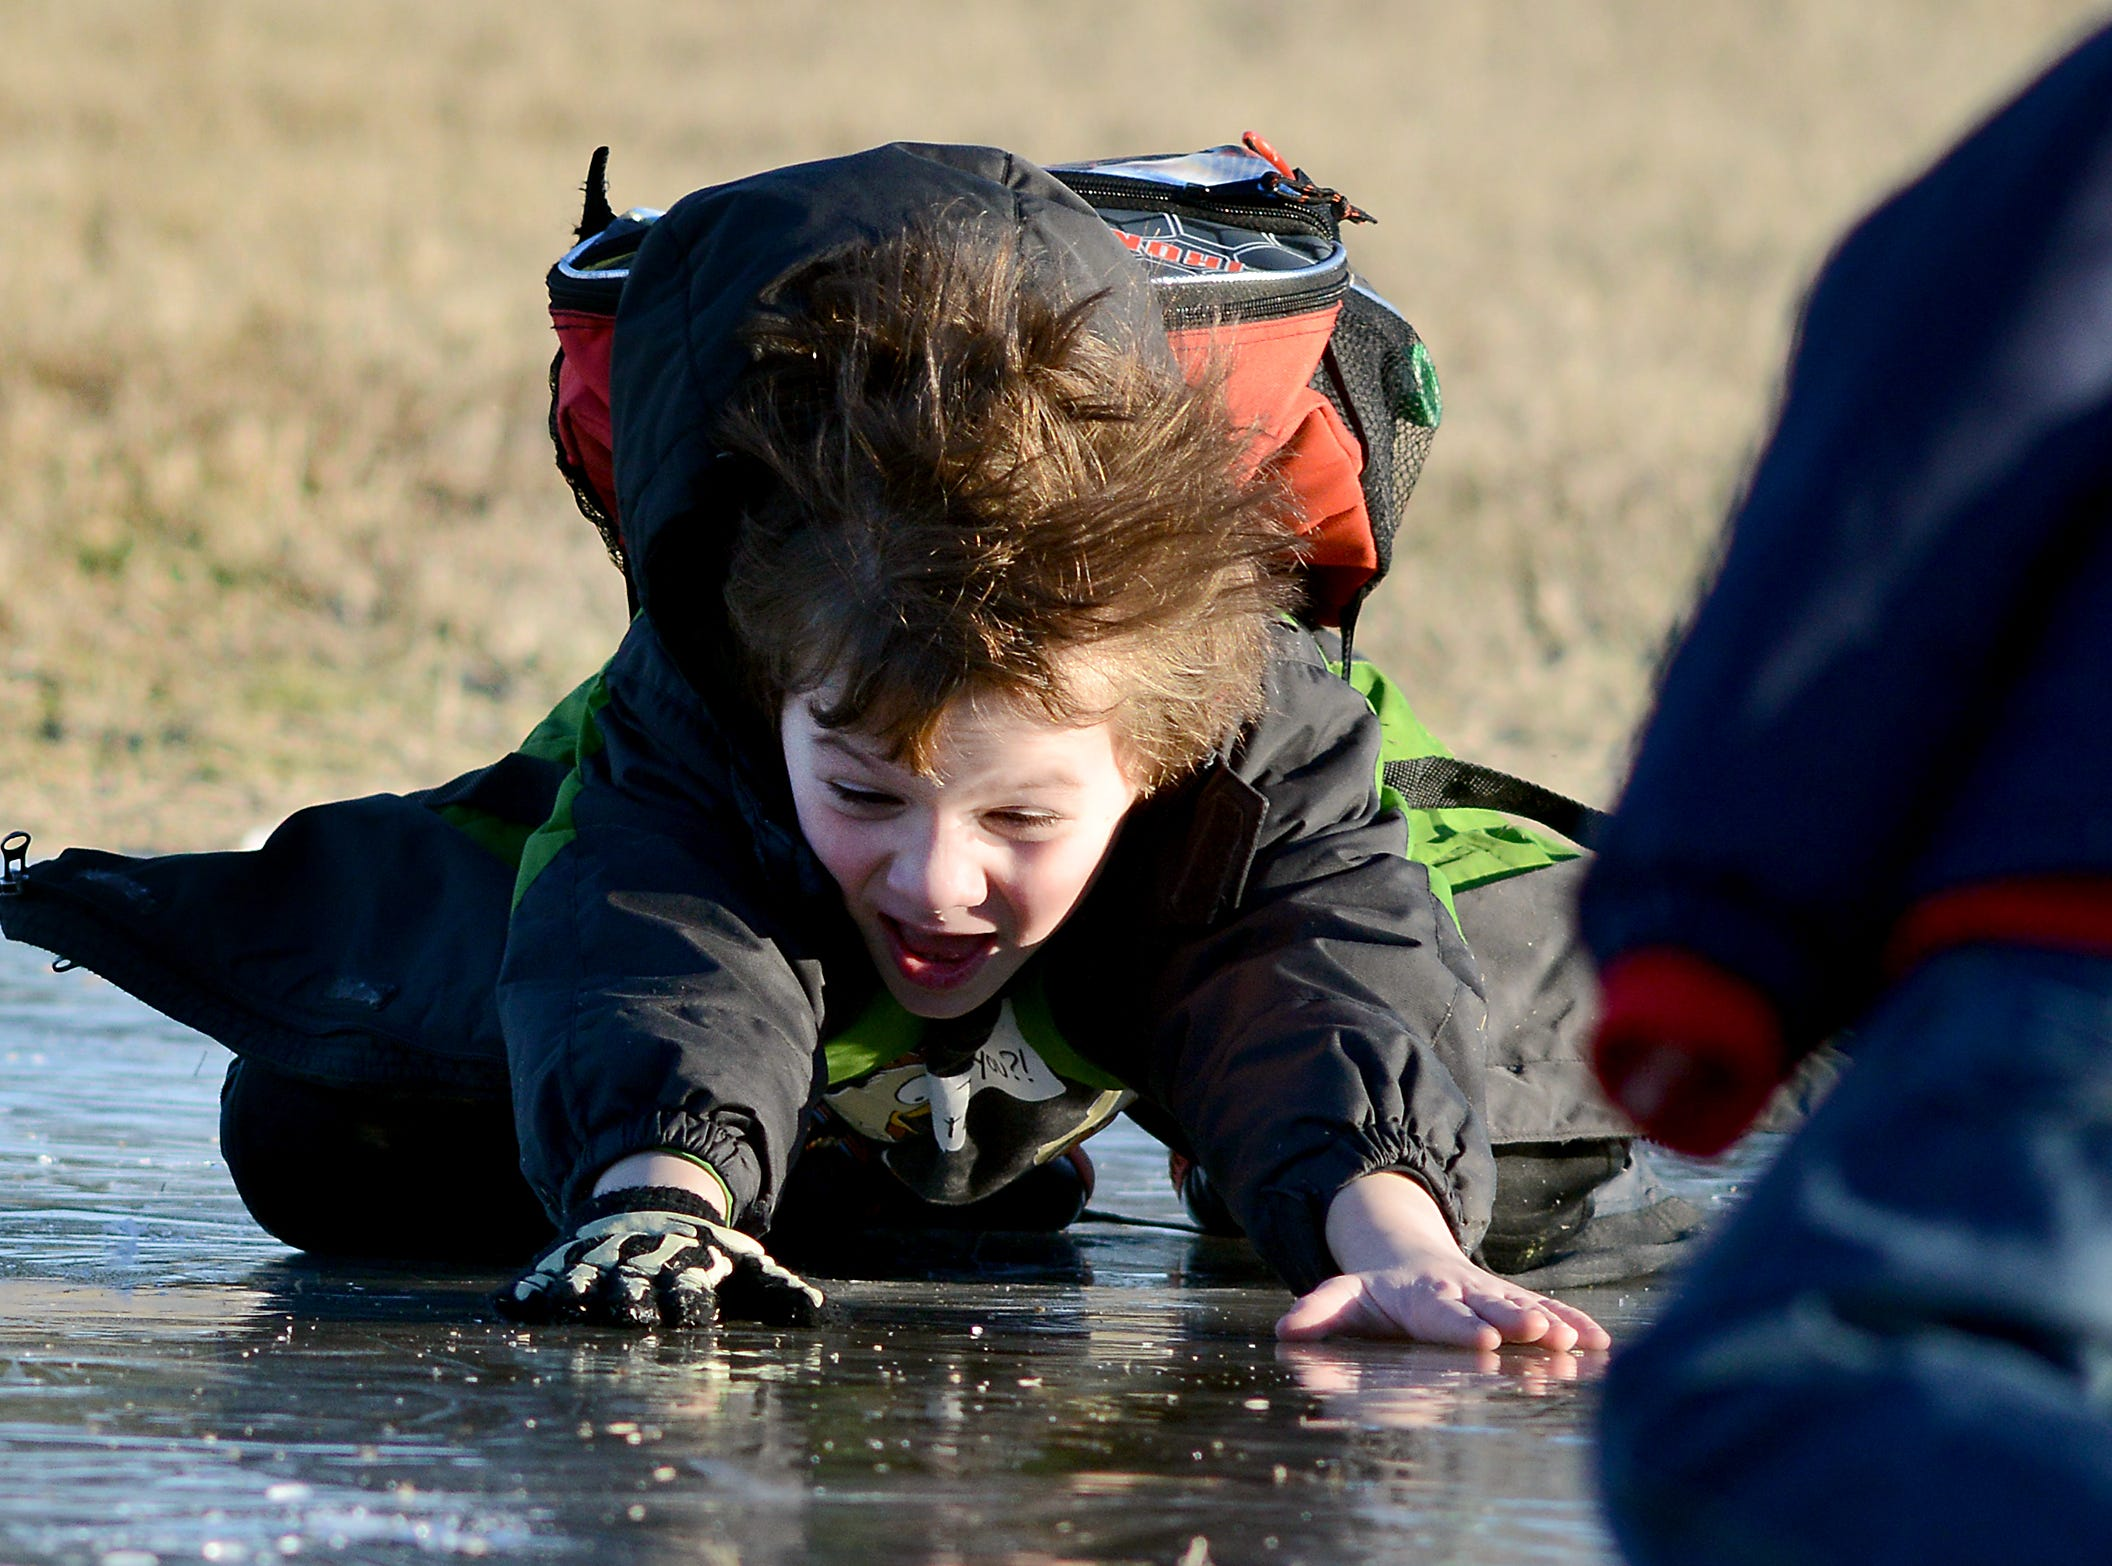 Tobias Walas, 7, and other Ocean City Elementary School students turned a frozen puddle into an ice slide after school Tuesday afternoon at the school in West Ocean City. 2013.